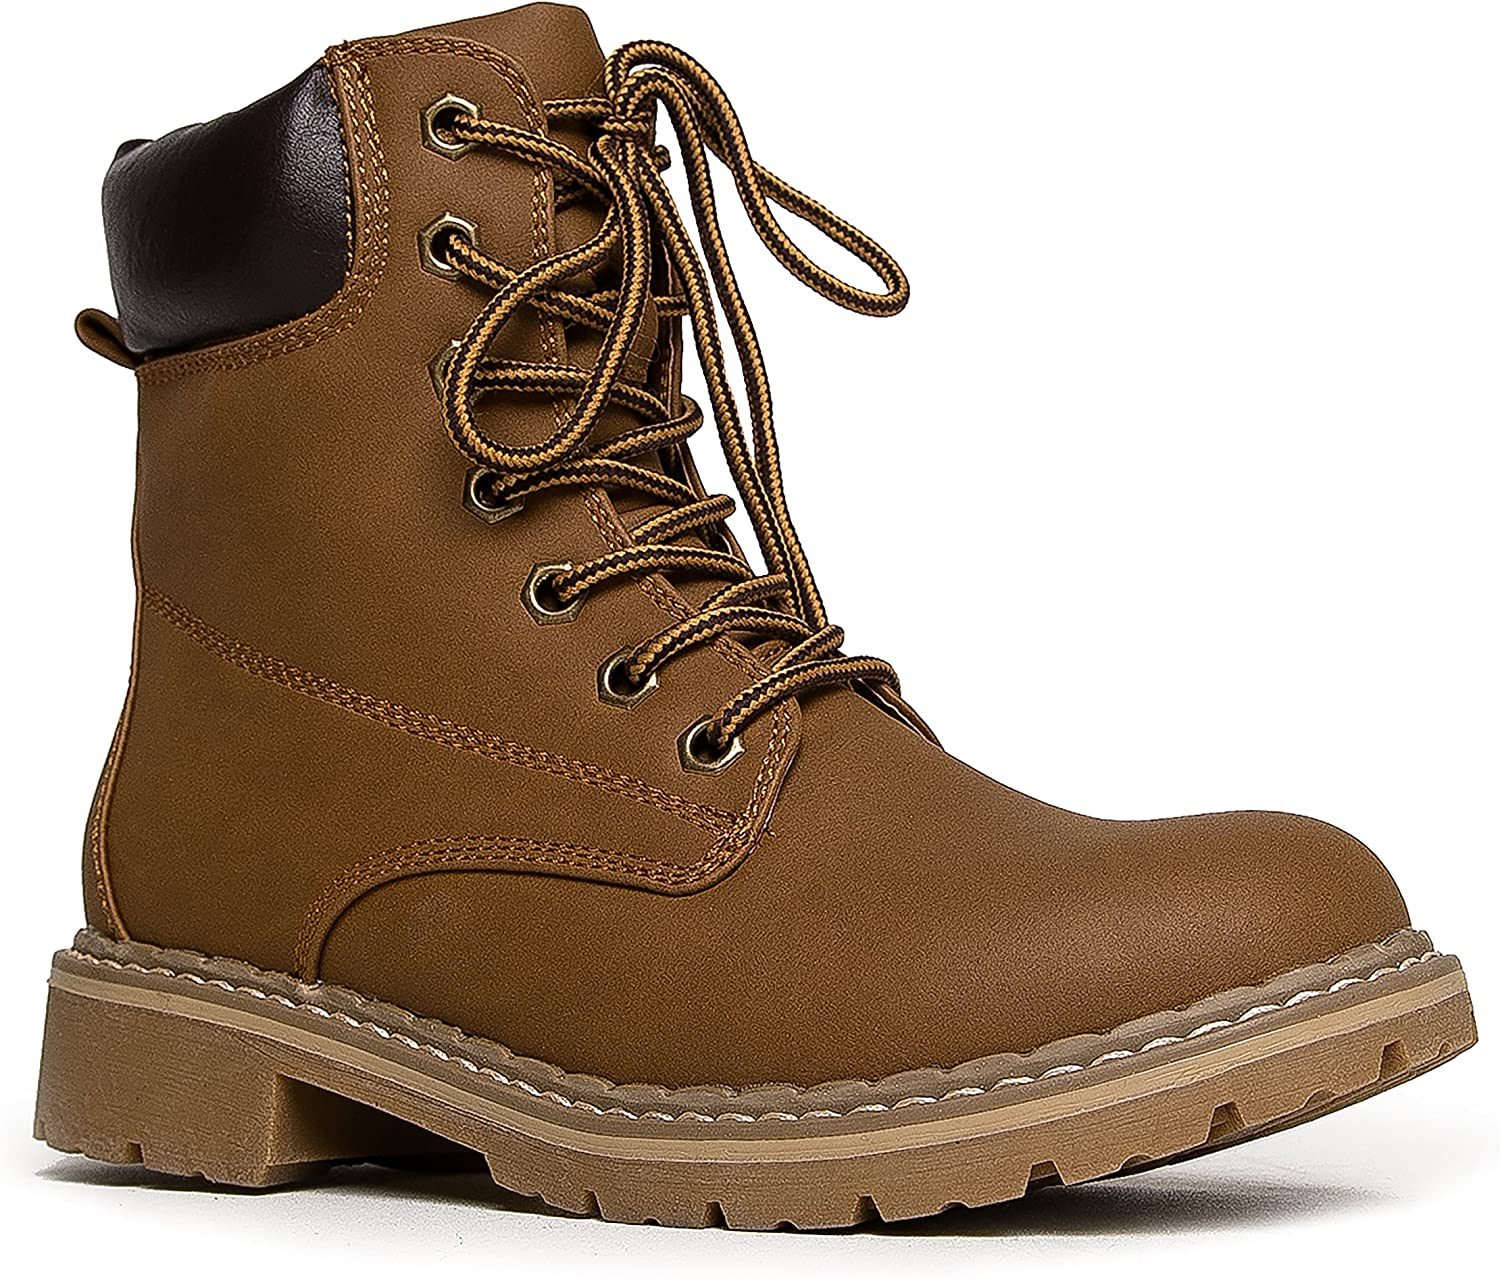 J. Adams Lace Up Combat Boot – Casual Outdoor Slip On Ankle Bootie – Military Mid Calf Fashion Round Toe Shoe - Trek